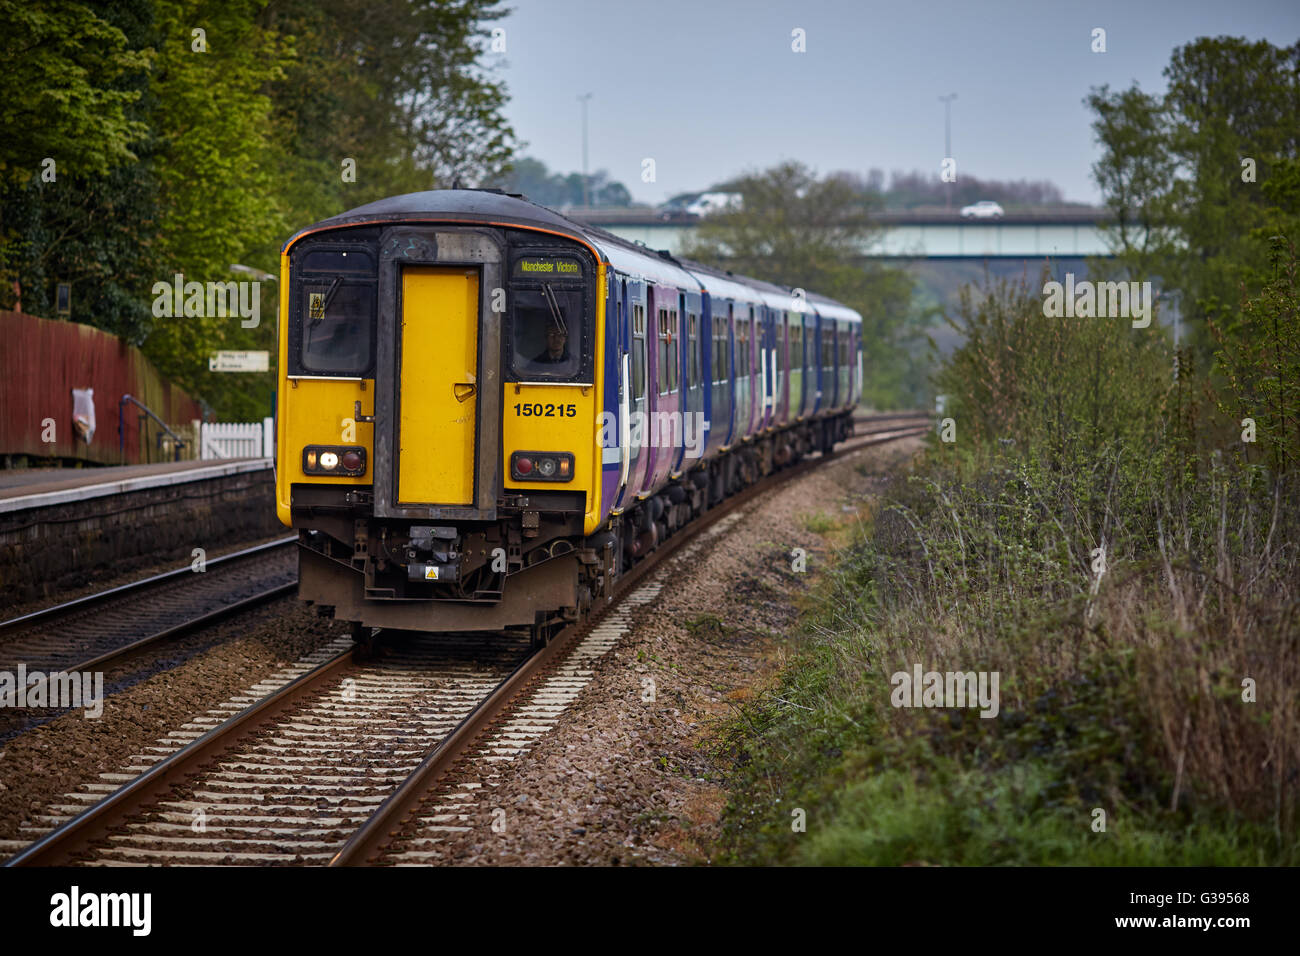 train transport wigan station Gathurst  On the outskirts of the Metropolitan Borough of Wigan, Greater Manchester, - Stock Image